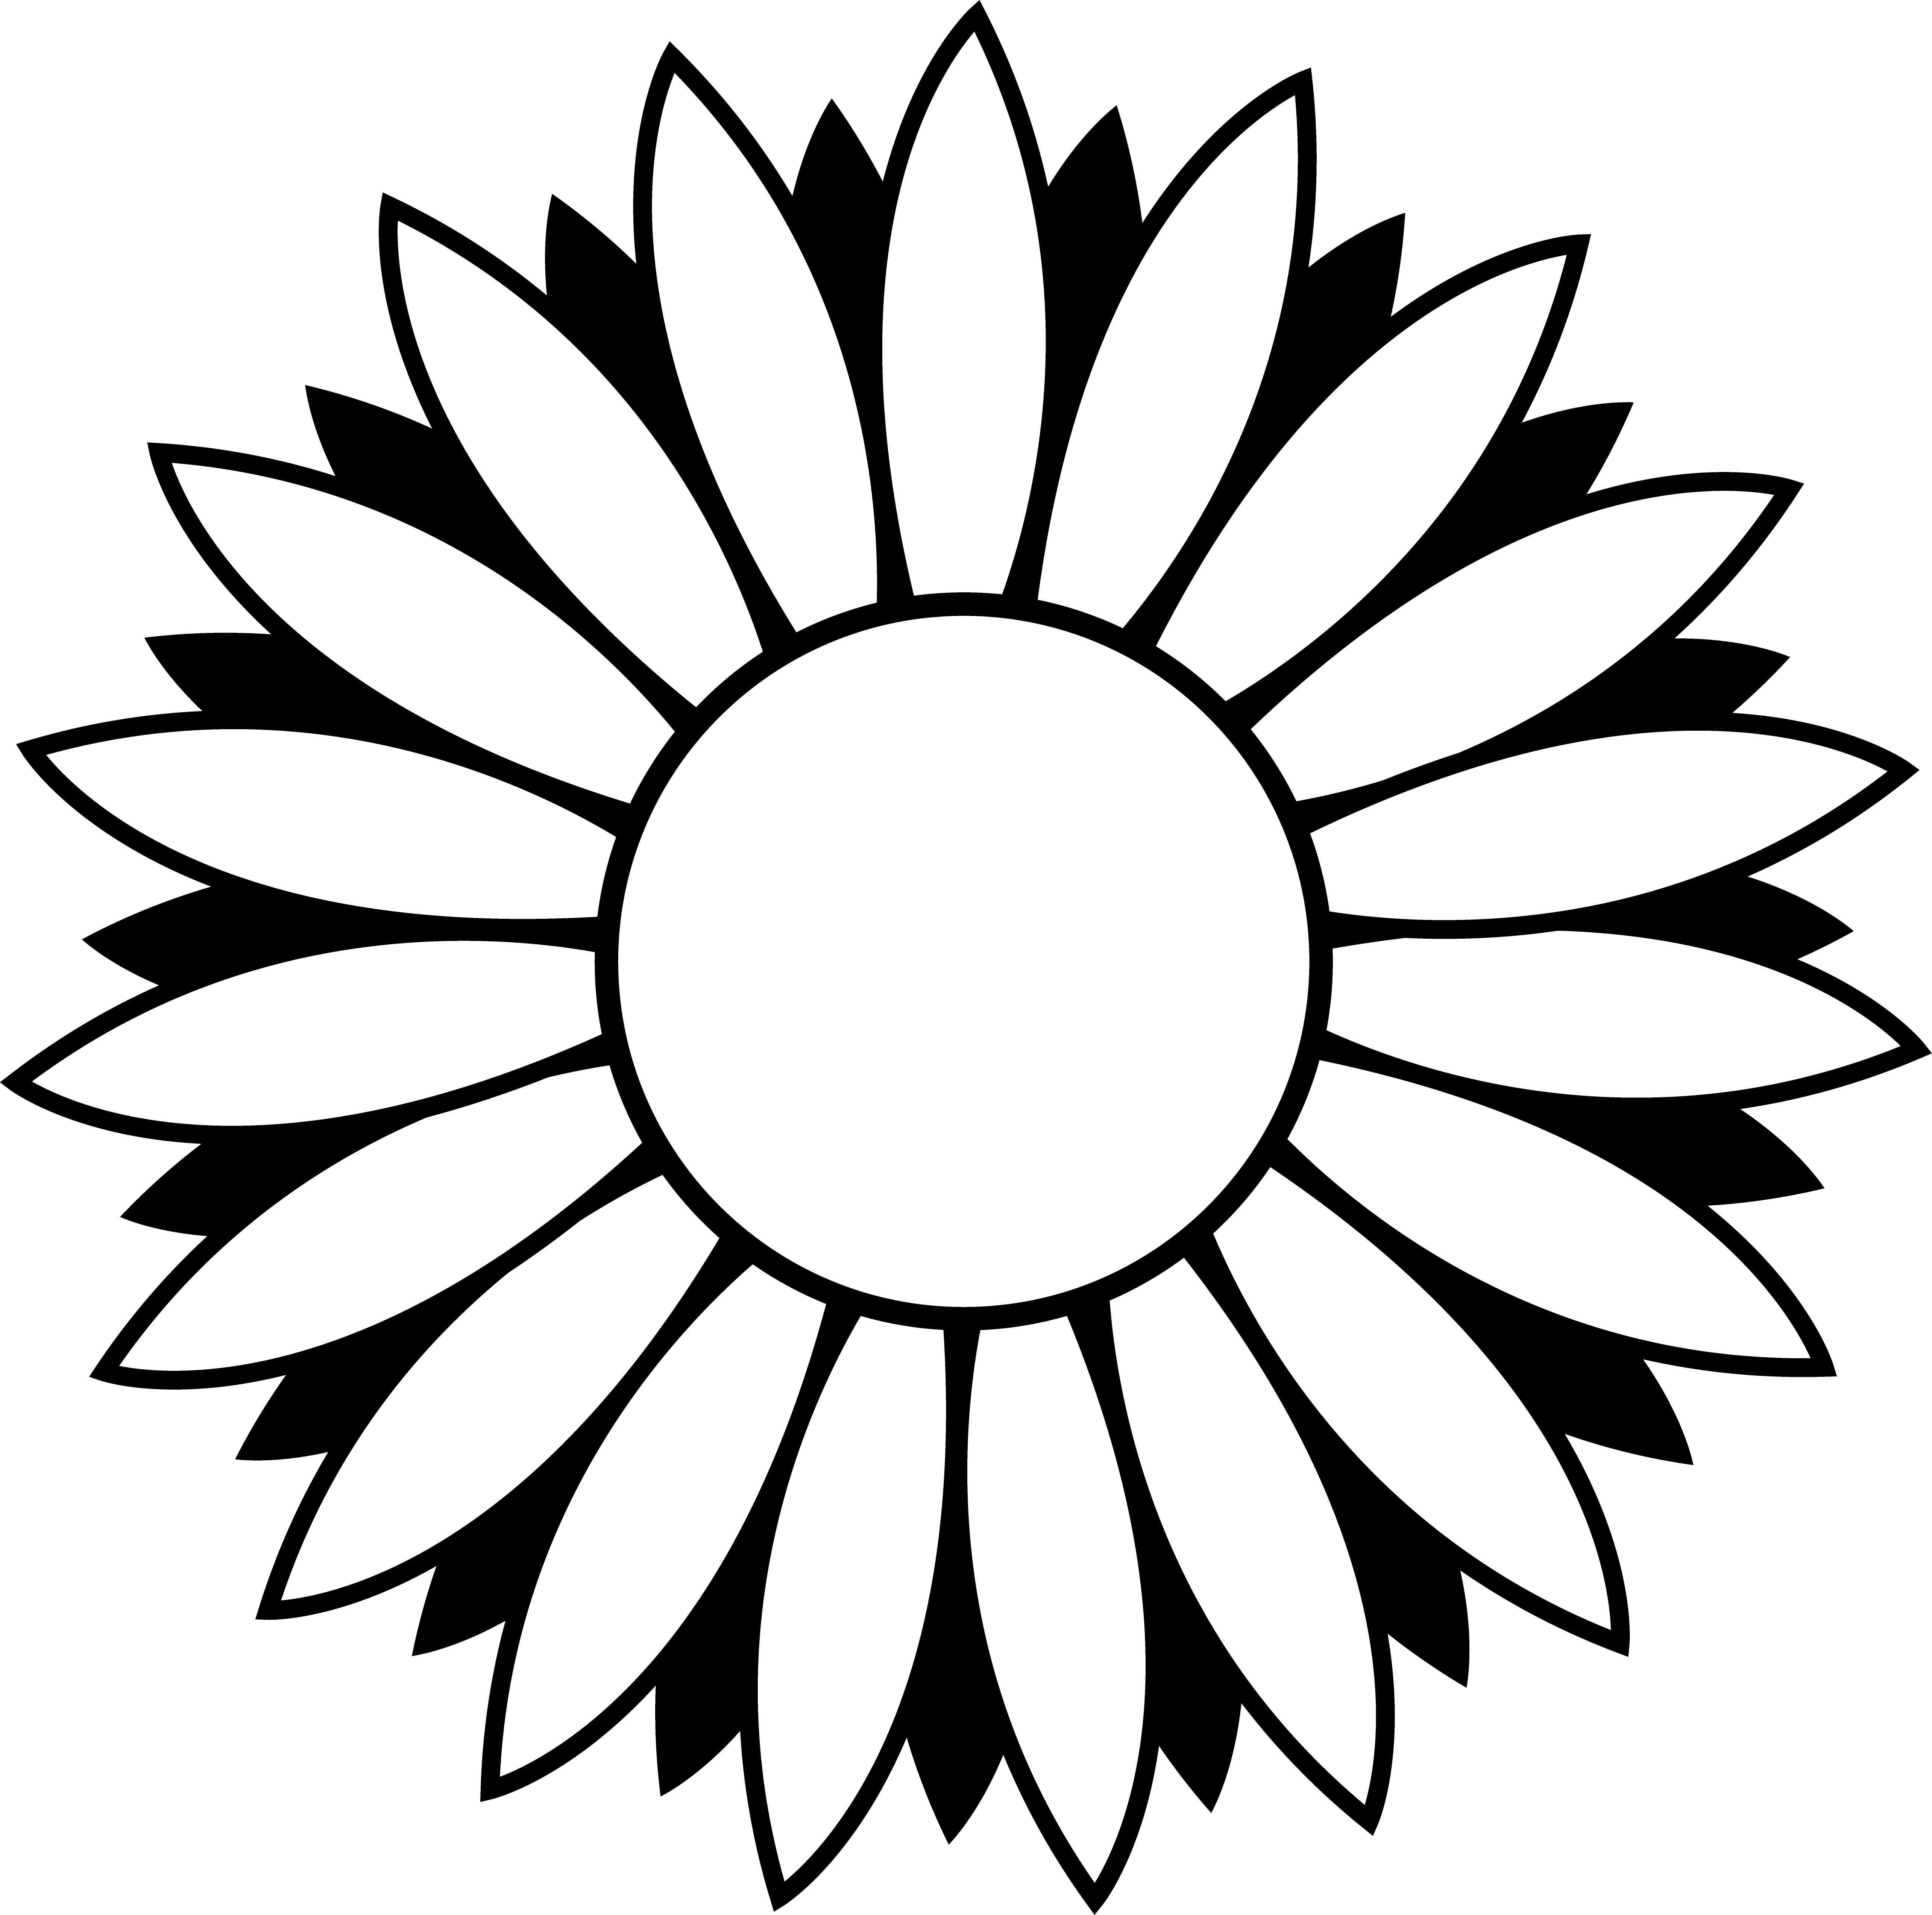 Flower garden clipart black and white clip library library Pin by laura wagstaffe on inspiration | Pinterest | Sunflowers clip library library